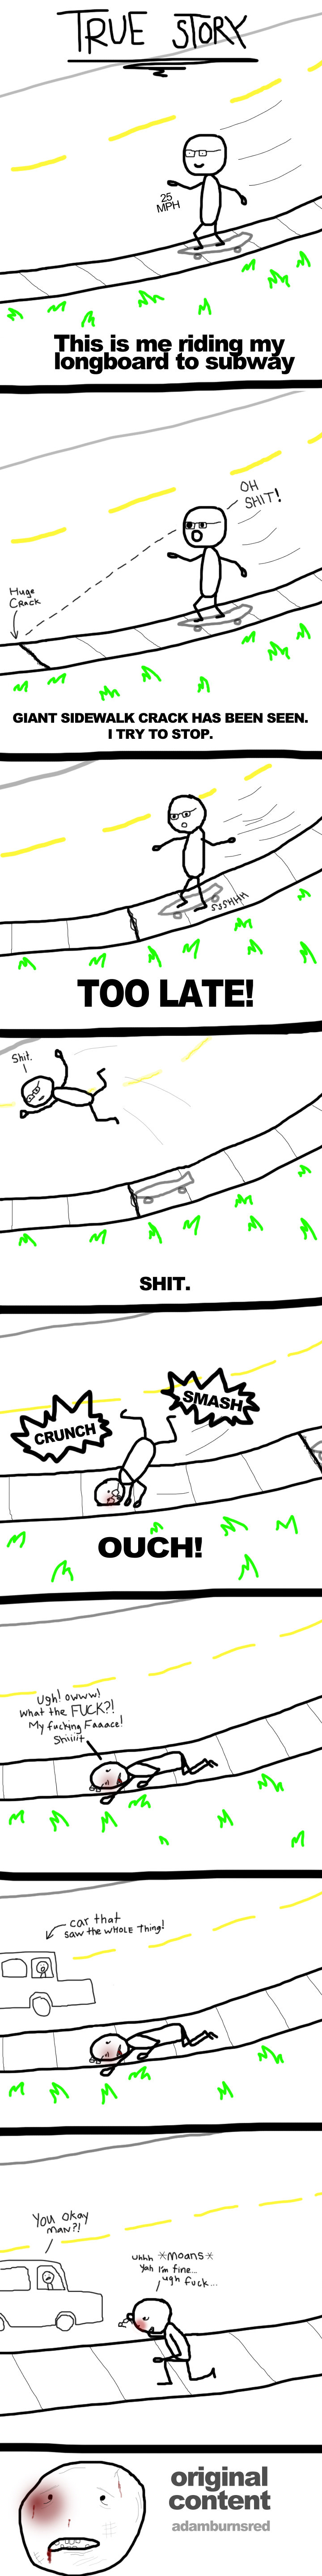 face smashed comic. wow 10 thumbs? waste of time making this . This is me ridin a, Longboard to w y GIANT SIDEWALK CRACK HAS BEEN SEEN. I TRY TO STOP. um. %moar